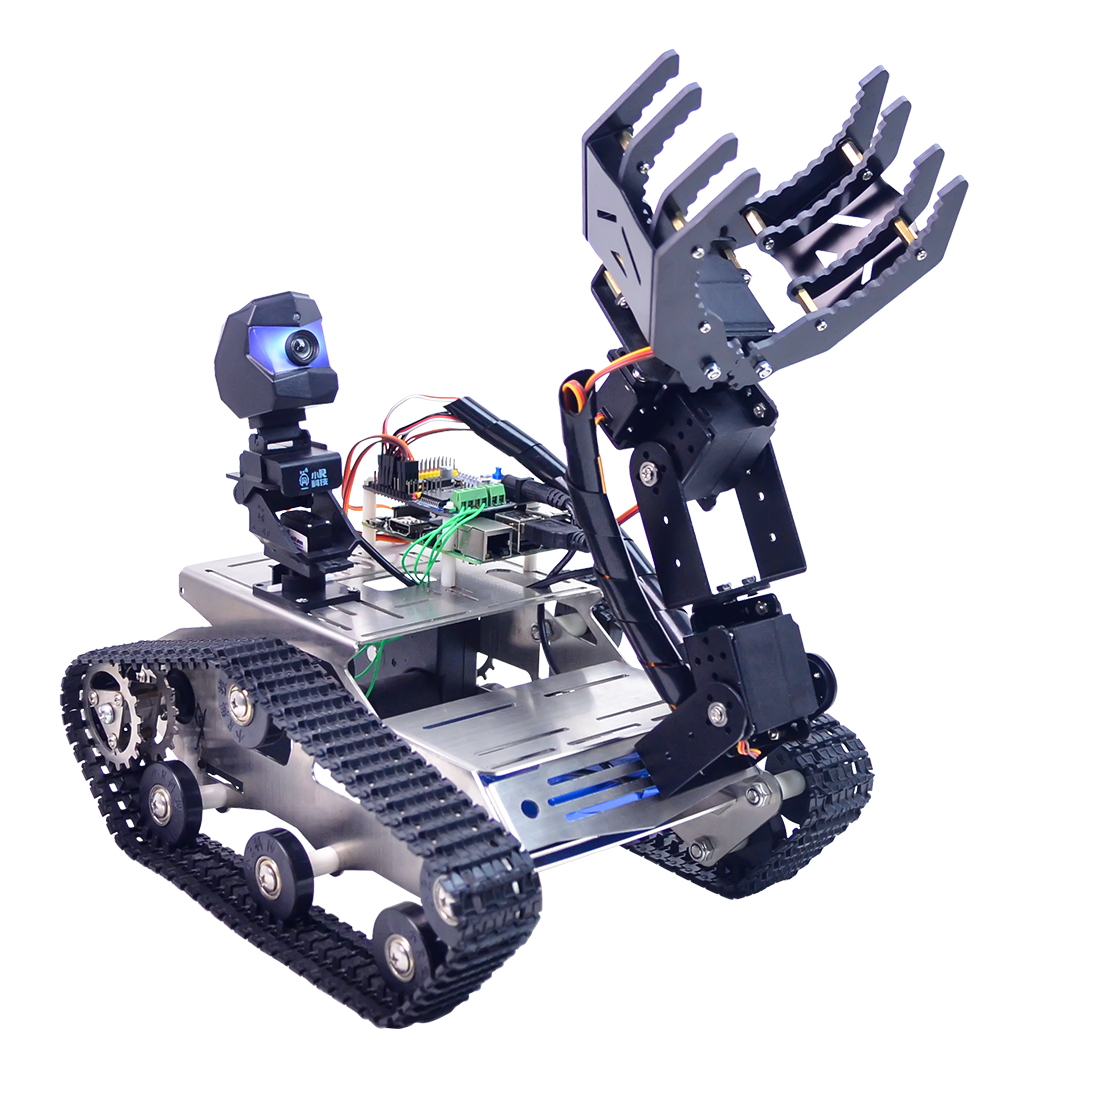 Programmable Toy TH WiFi FPV Tank Robot Car Kit With Arm For  Arduino MEGA - Line Patrol Obstacle Avoidance Version